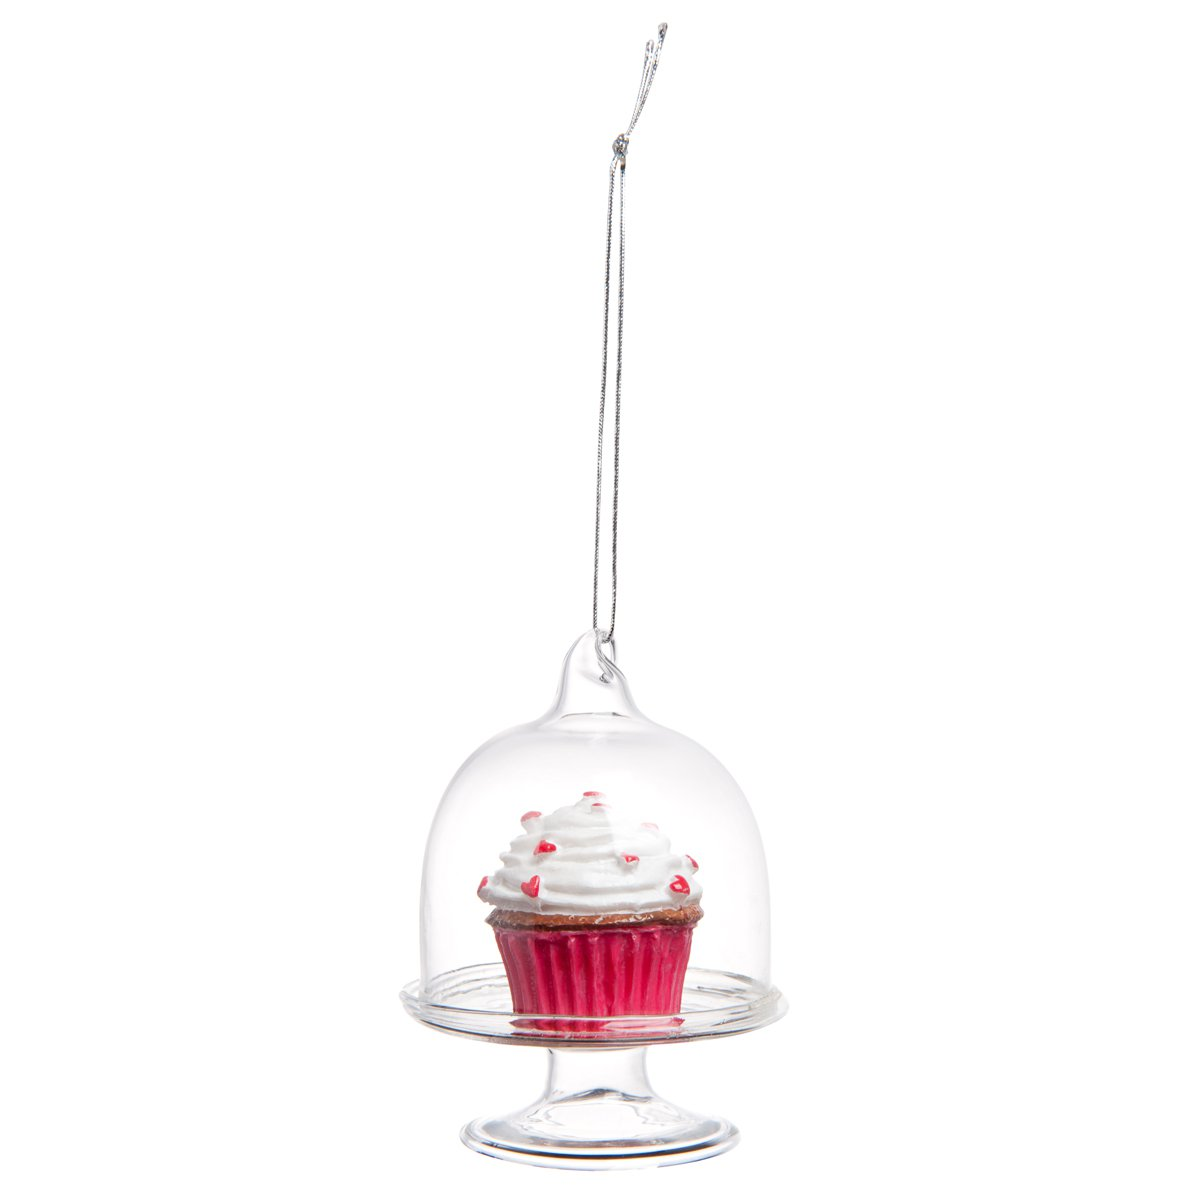 decoration noel gourmand cupcake